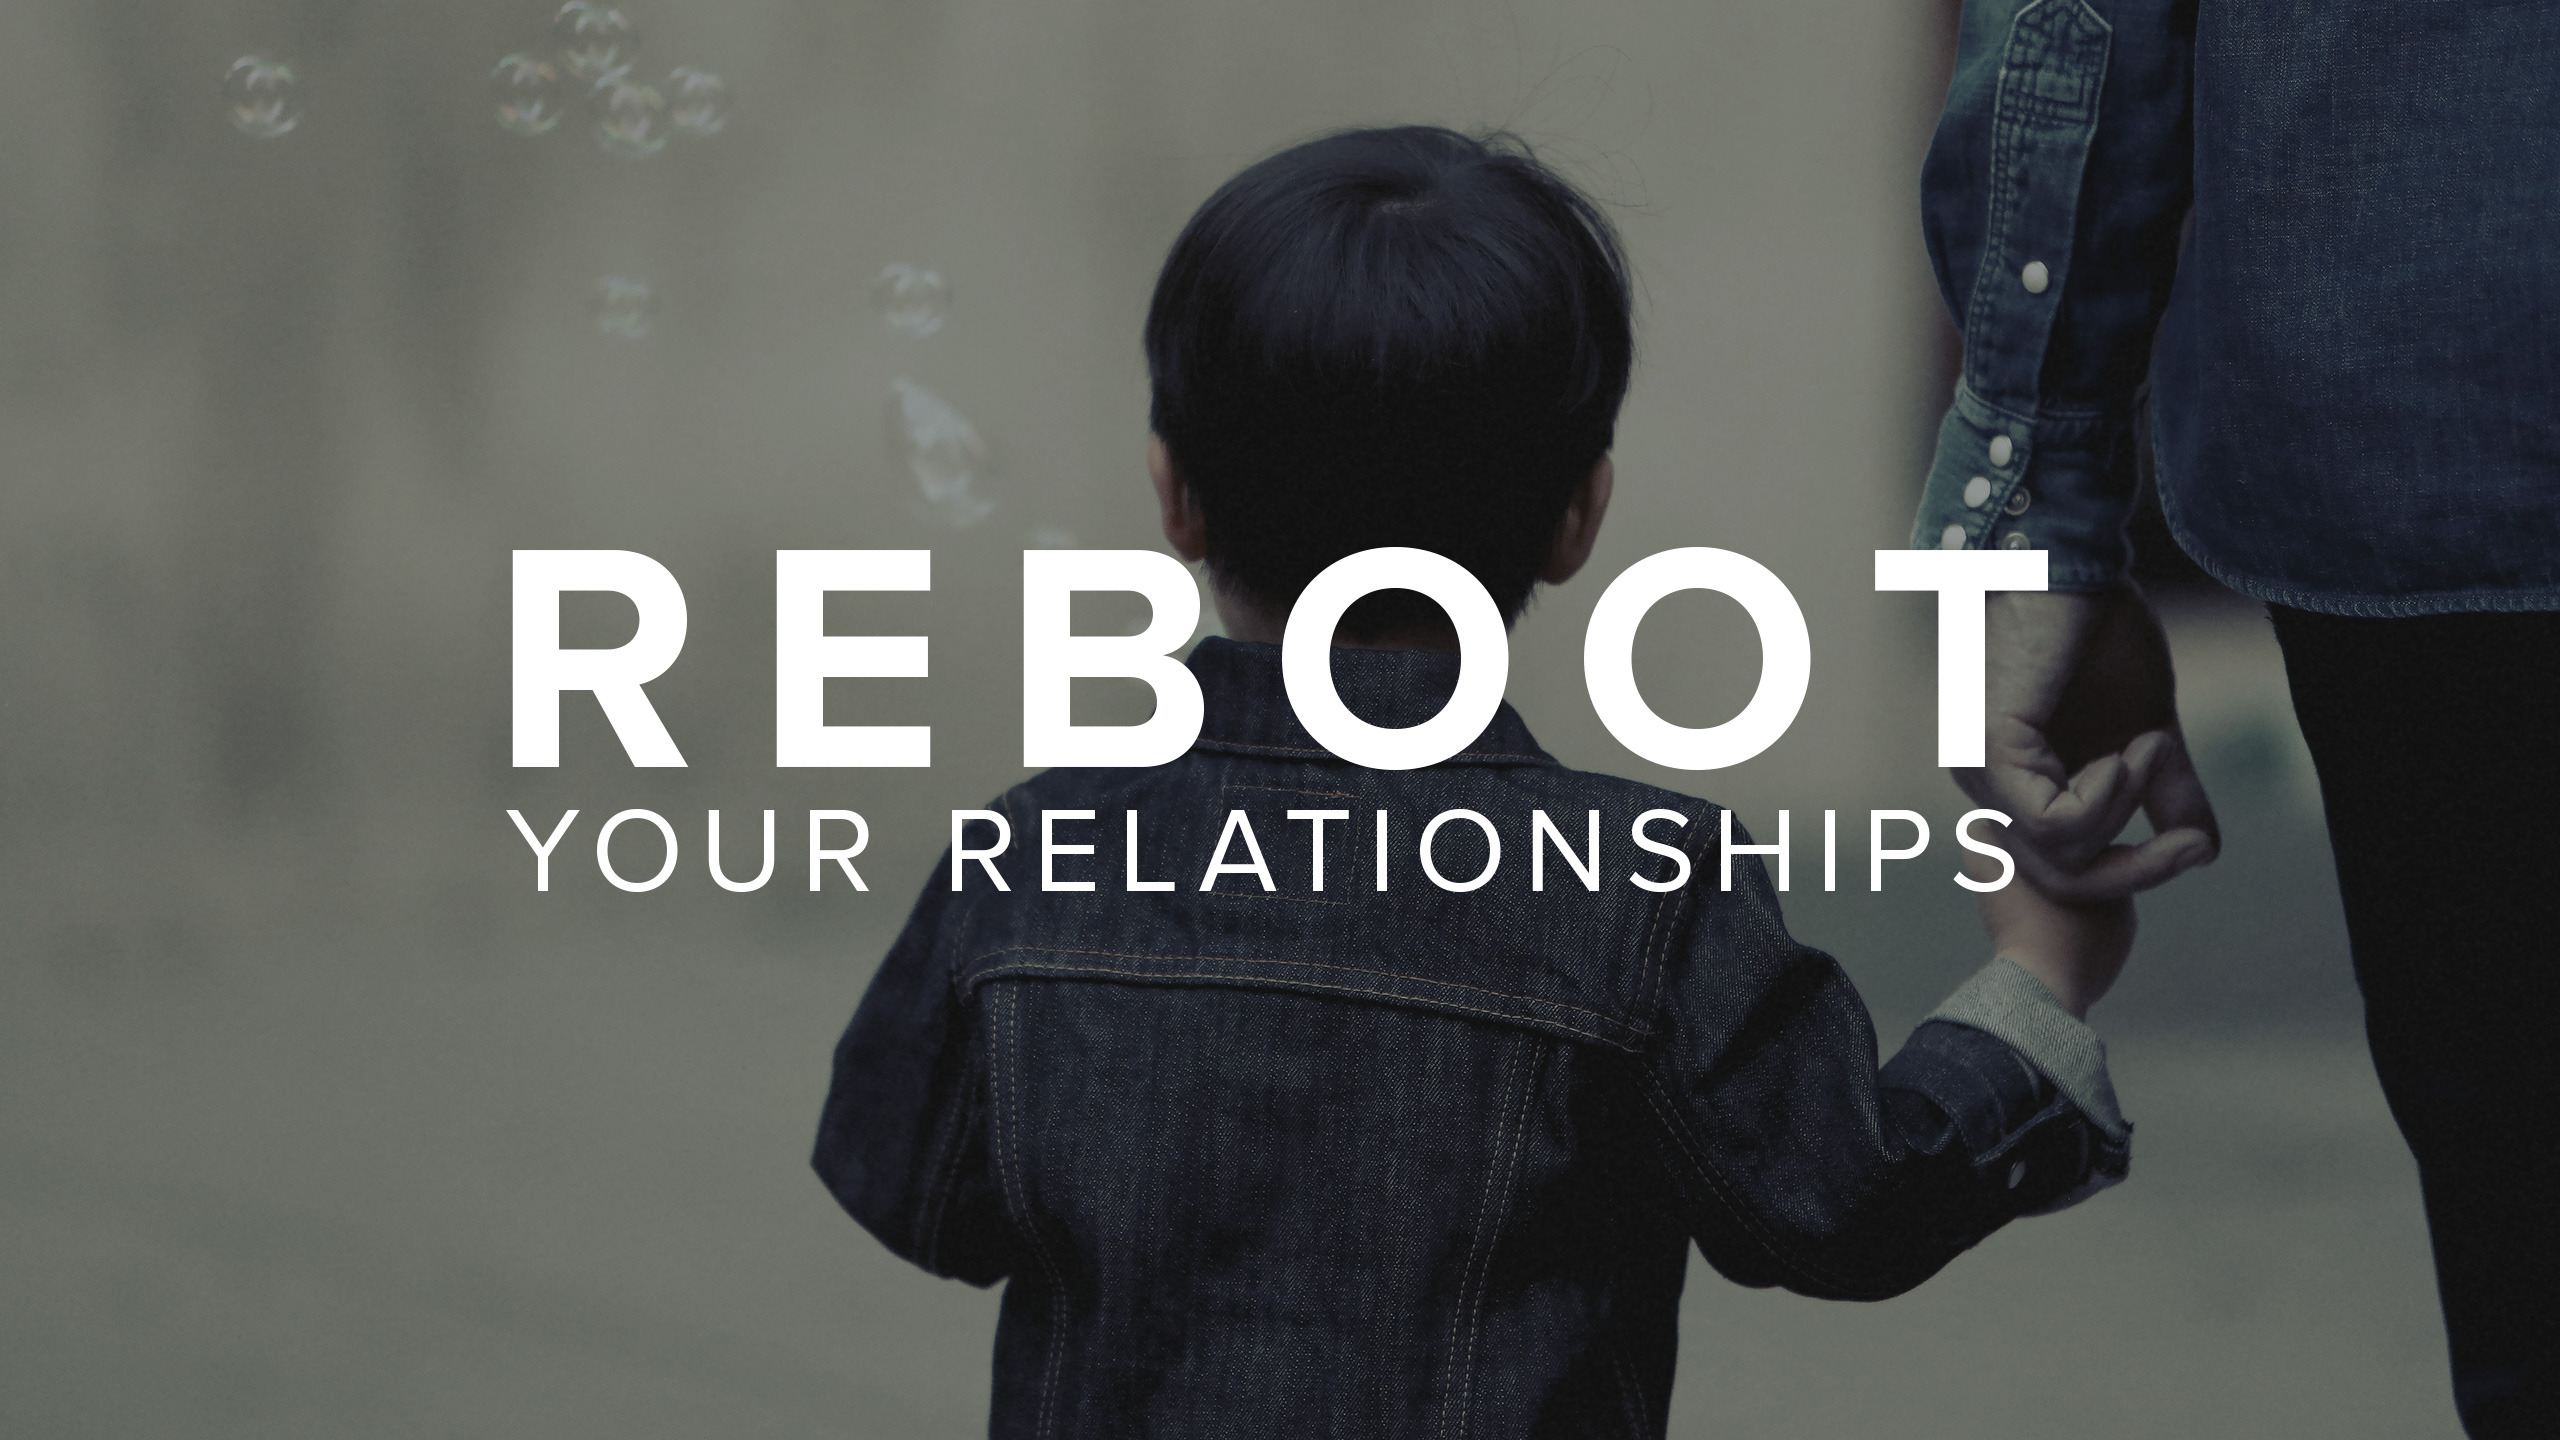 Reboot Your Relationships